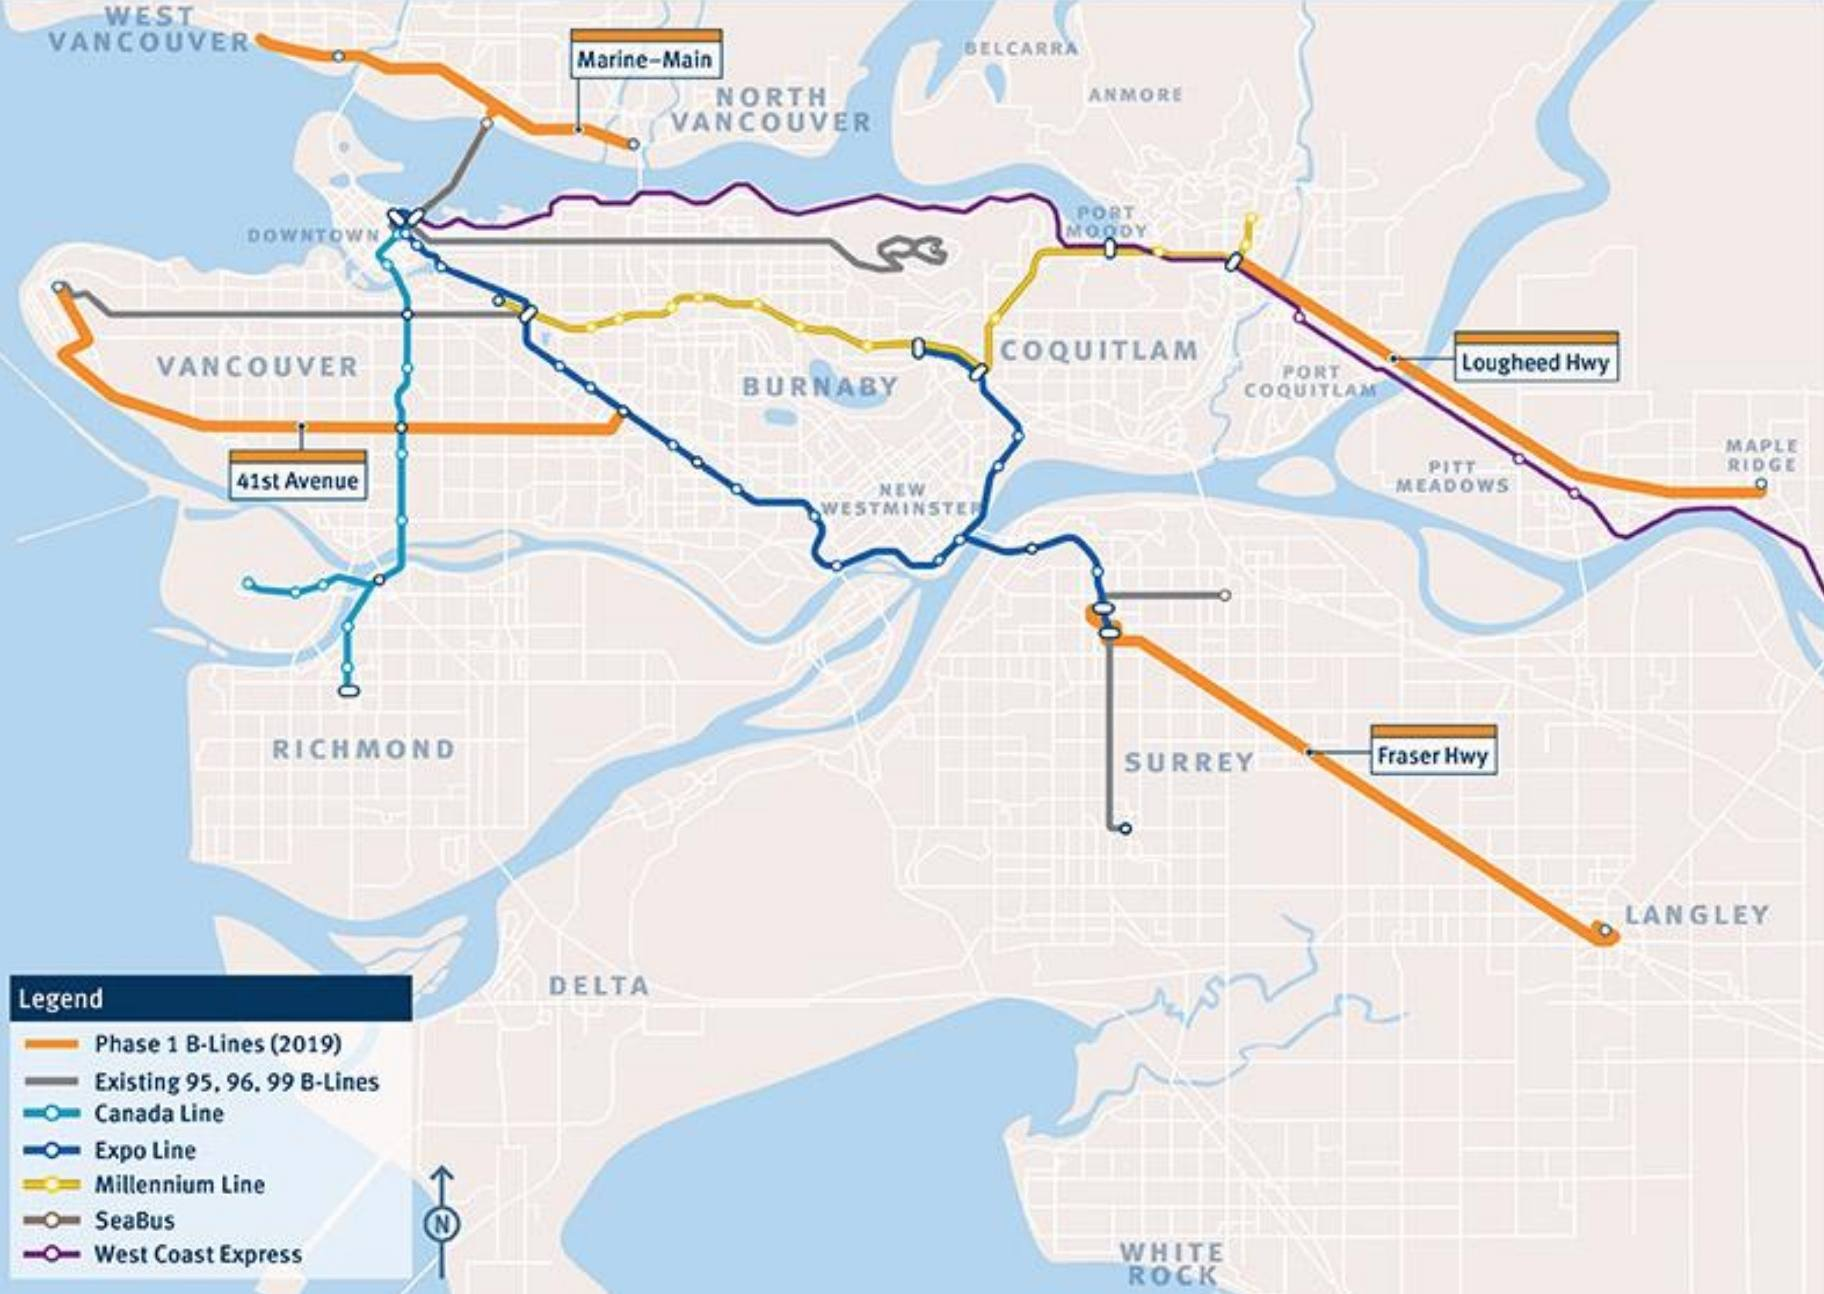 Map Of Canada Line Vancouver.4 New B Line Routes To Be Launched In Metro Vancouver By End Of 2019